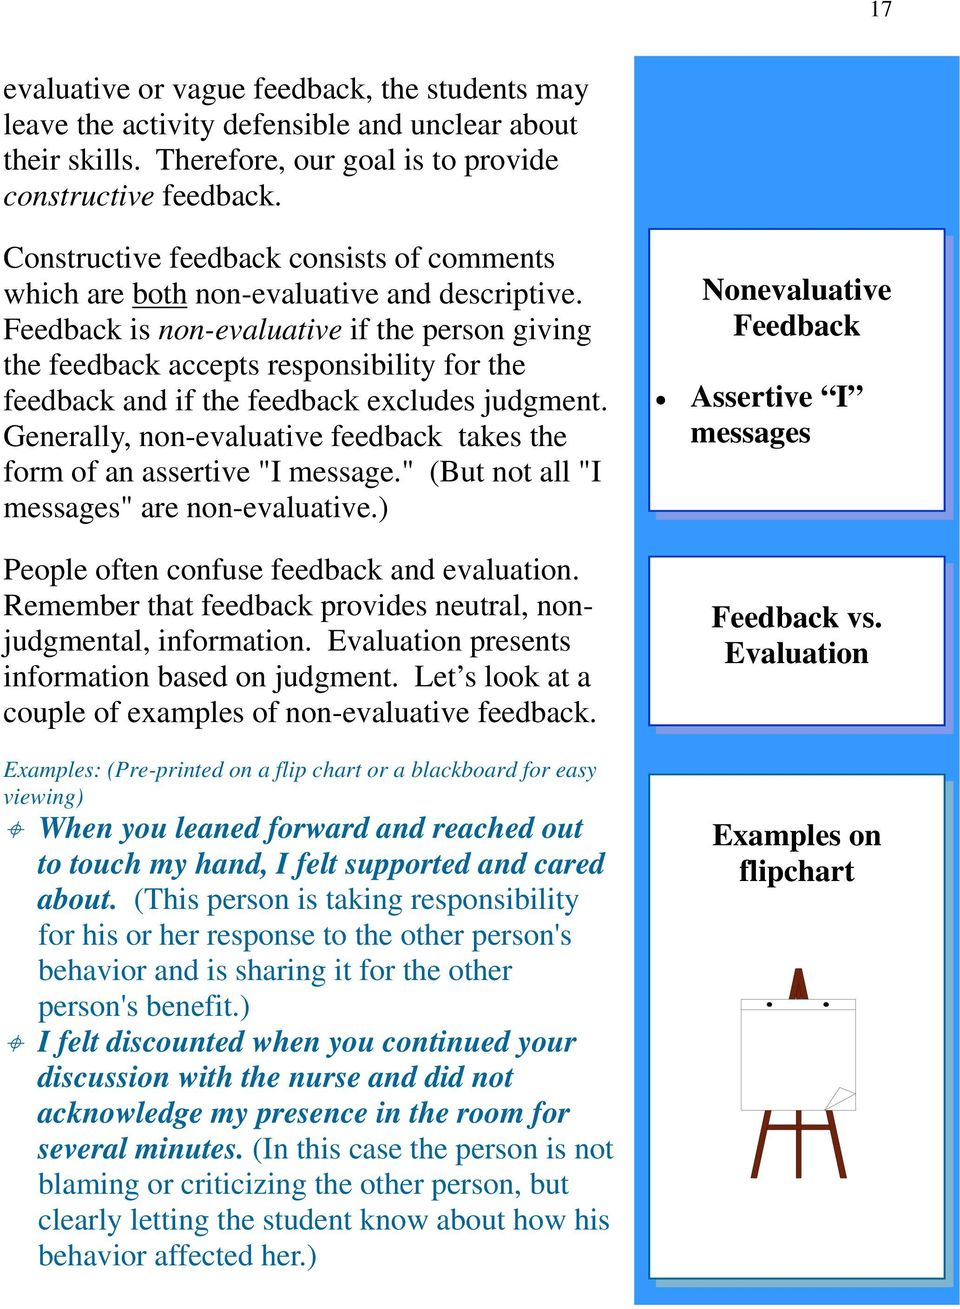 Feedback is non-evaluative if the person giving the feedback accepts responsibility for the feedback and if the feedback excludes judgment.